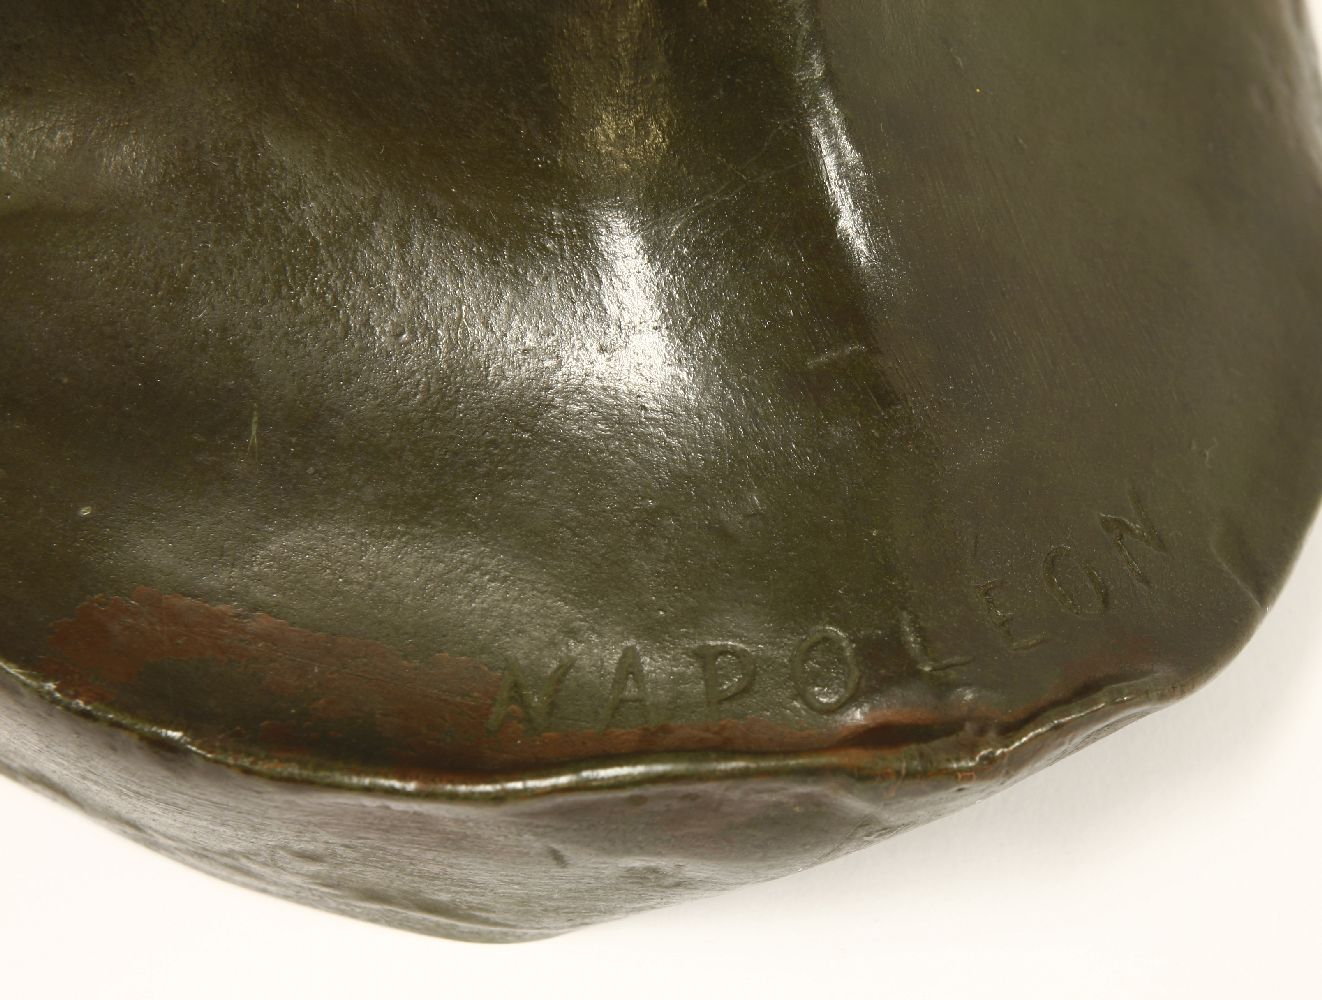 Lot 356 - NAPOLEON'S DEATH MASK ELECTROTYPE,mid to late 19th century, with bronzed finish, after Francois